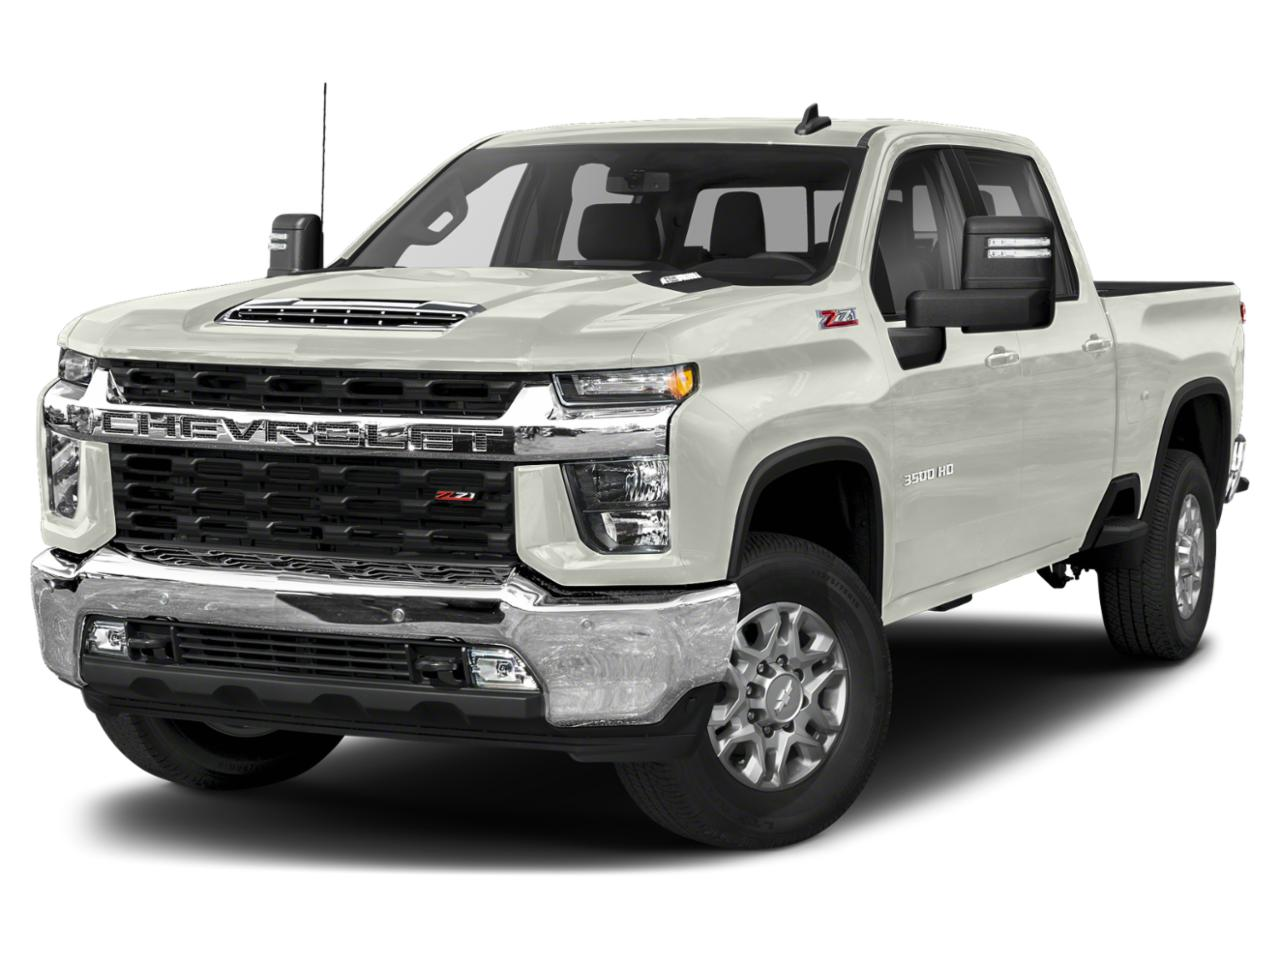 2020 Chevrolet Silverado 3500HD Vehicle Photo in Safford, AZ 85546